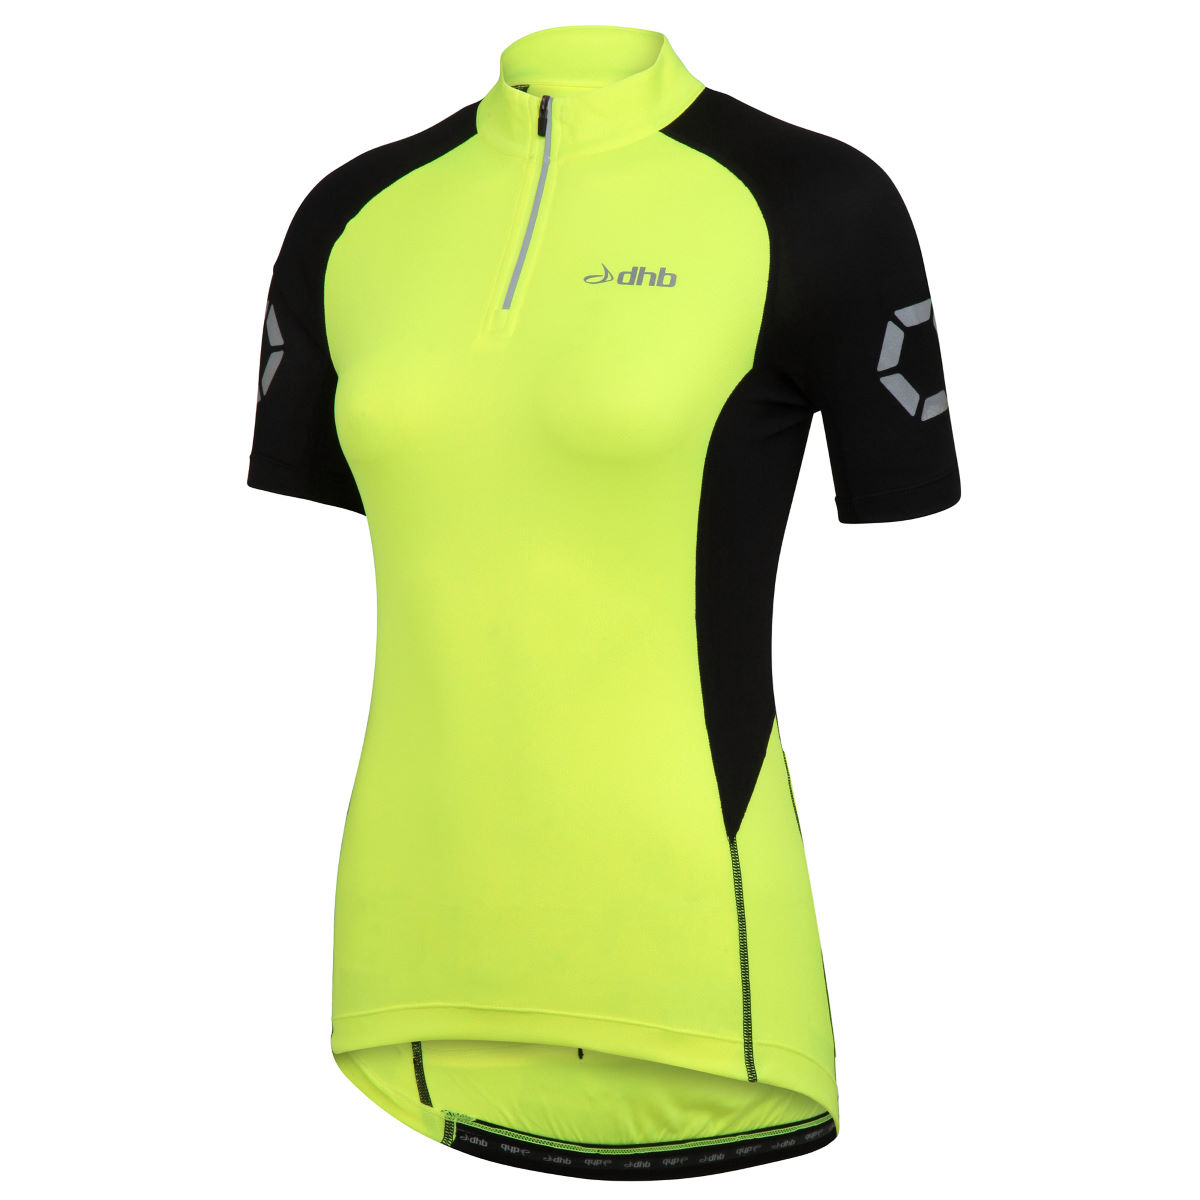 Maillot Femme dhb Flashlight (manches courtes) - 8 UK Fluro Yellow